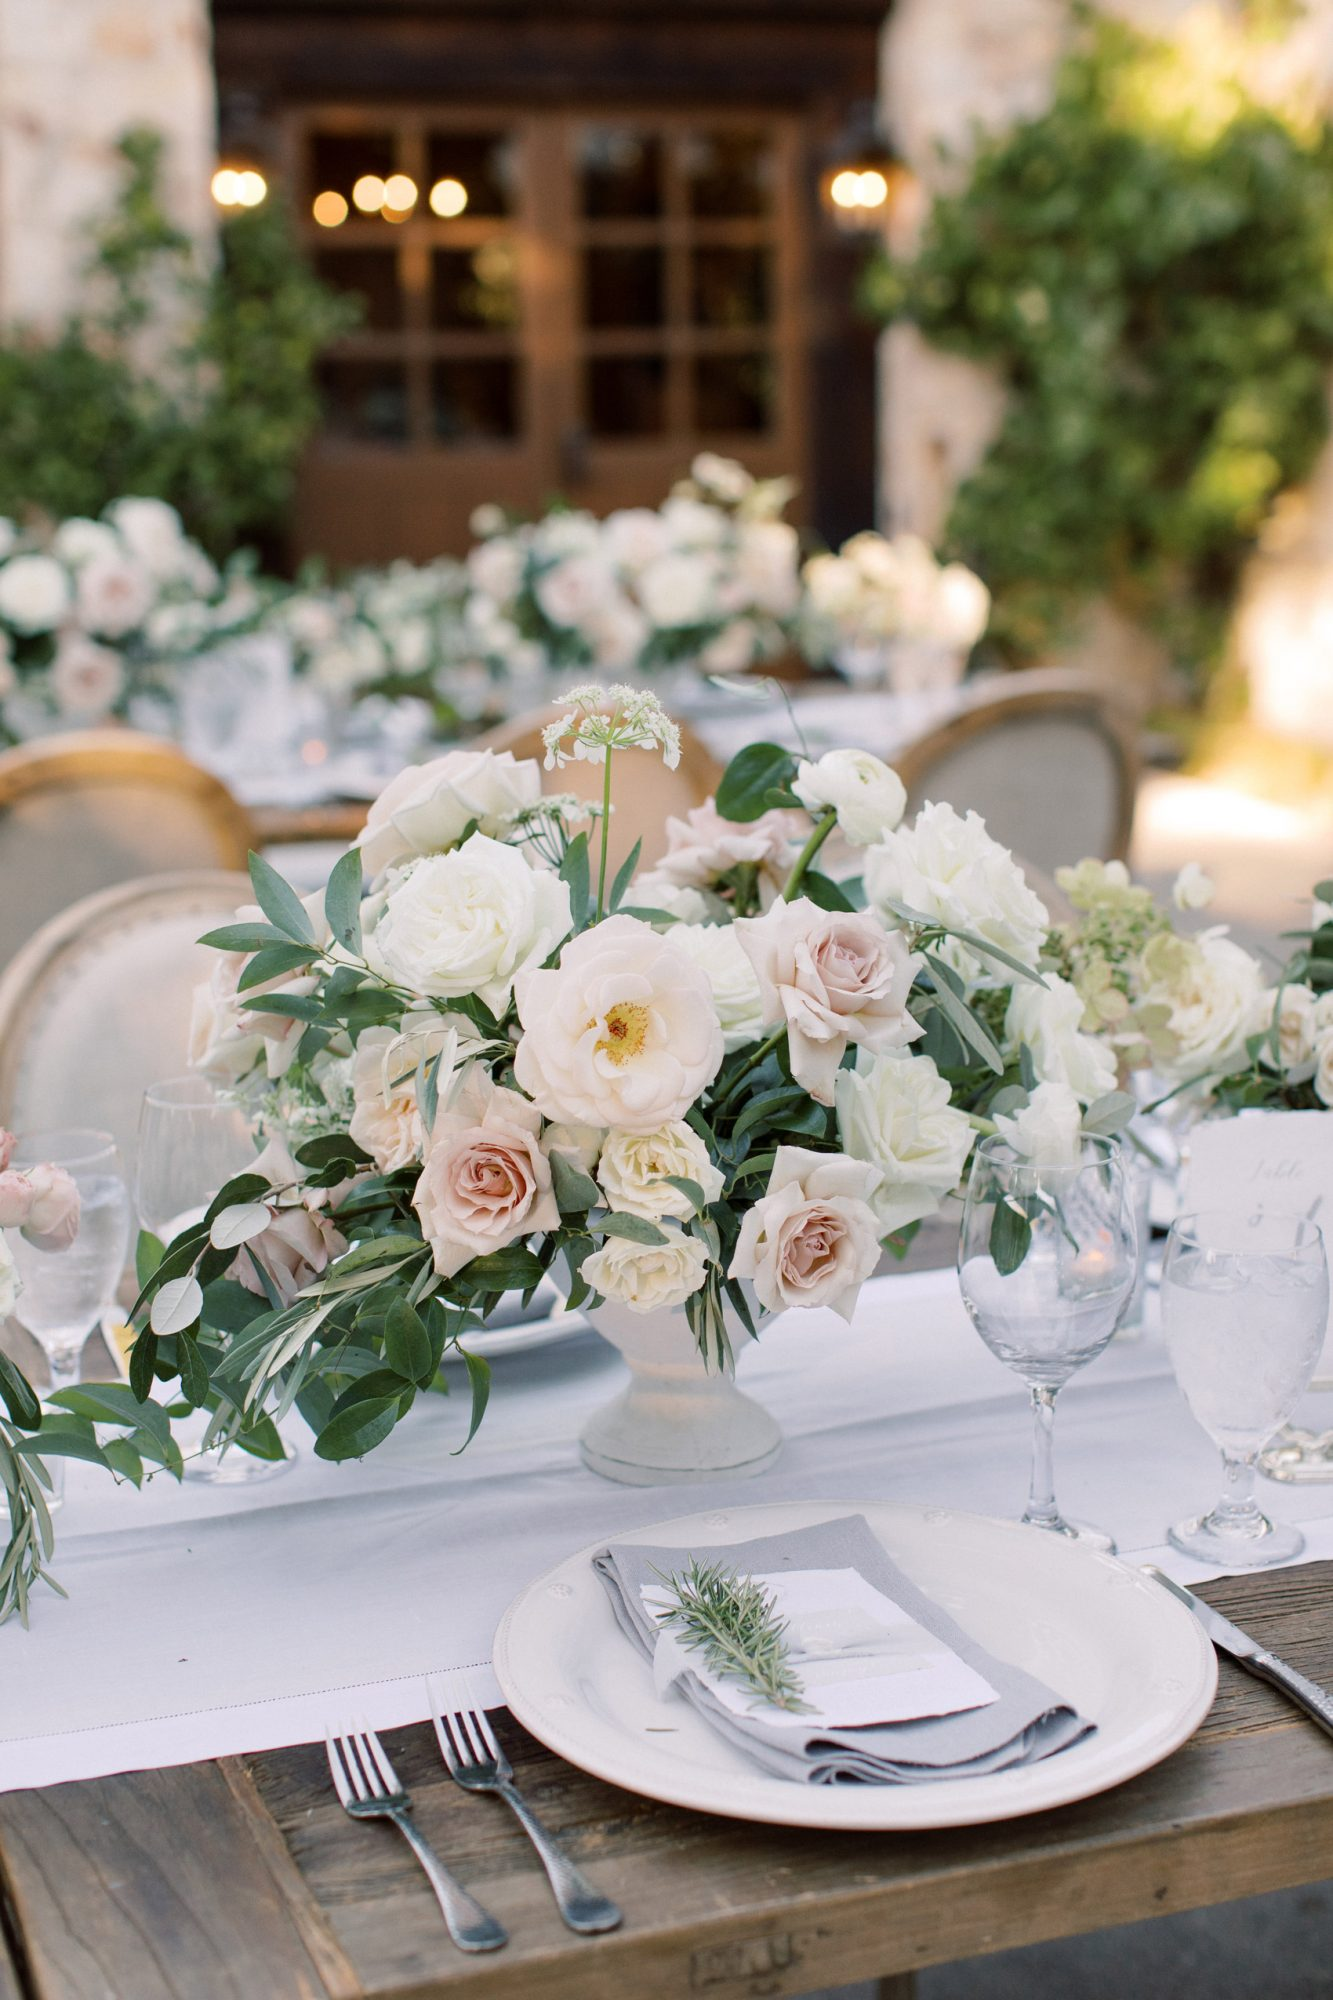 wedding place settings and floral centerpiece